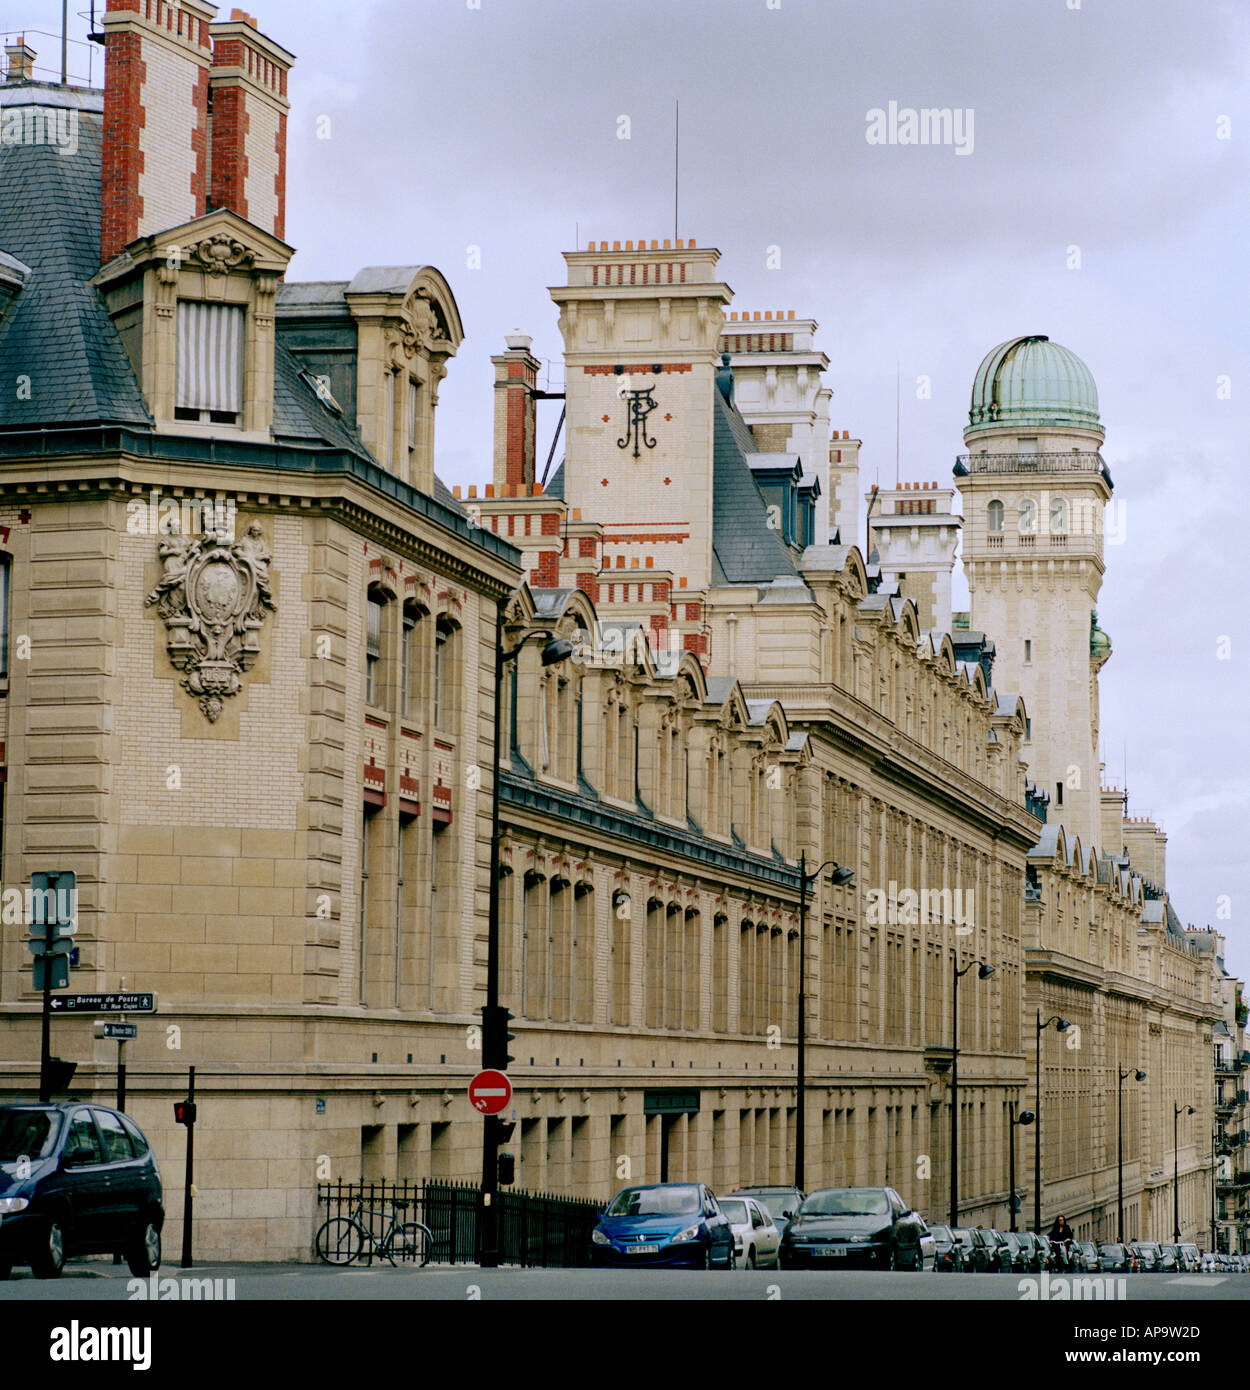 The Sorbonne University in the city of Paris In France In Europe Stock Photo